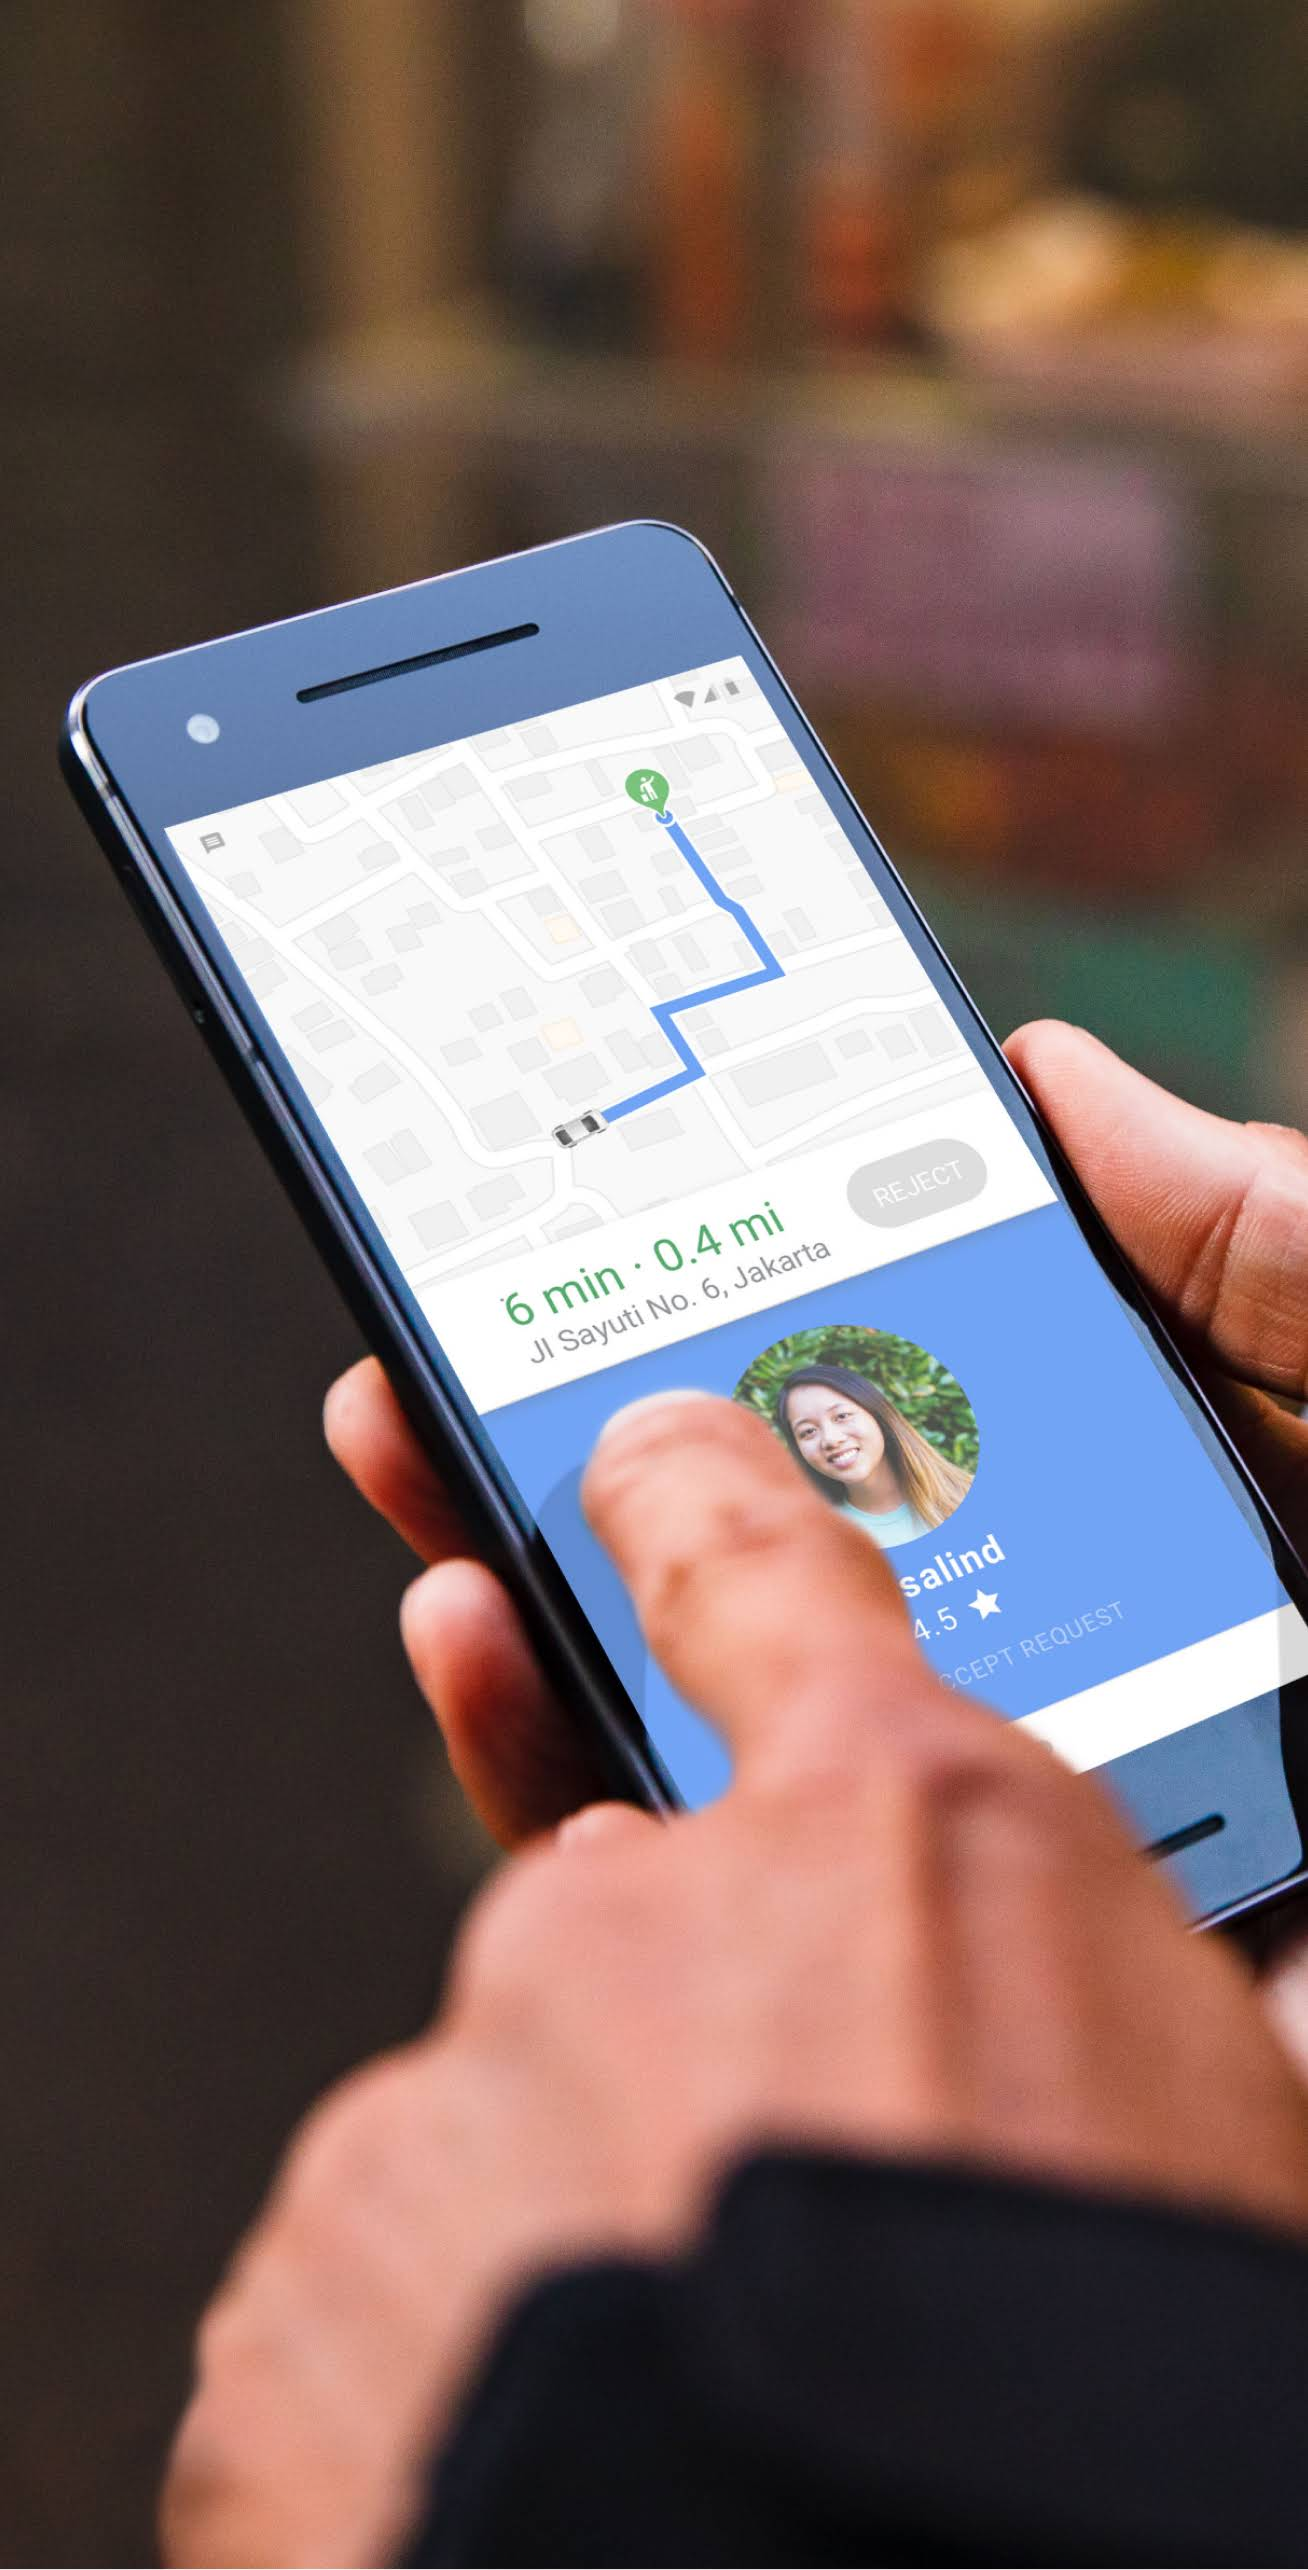 Phone showing on-demand ride on a map with arrival time and location